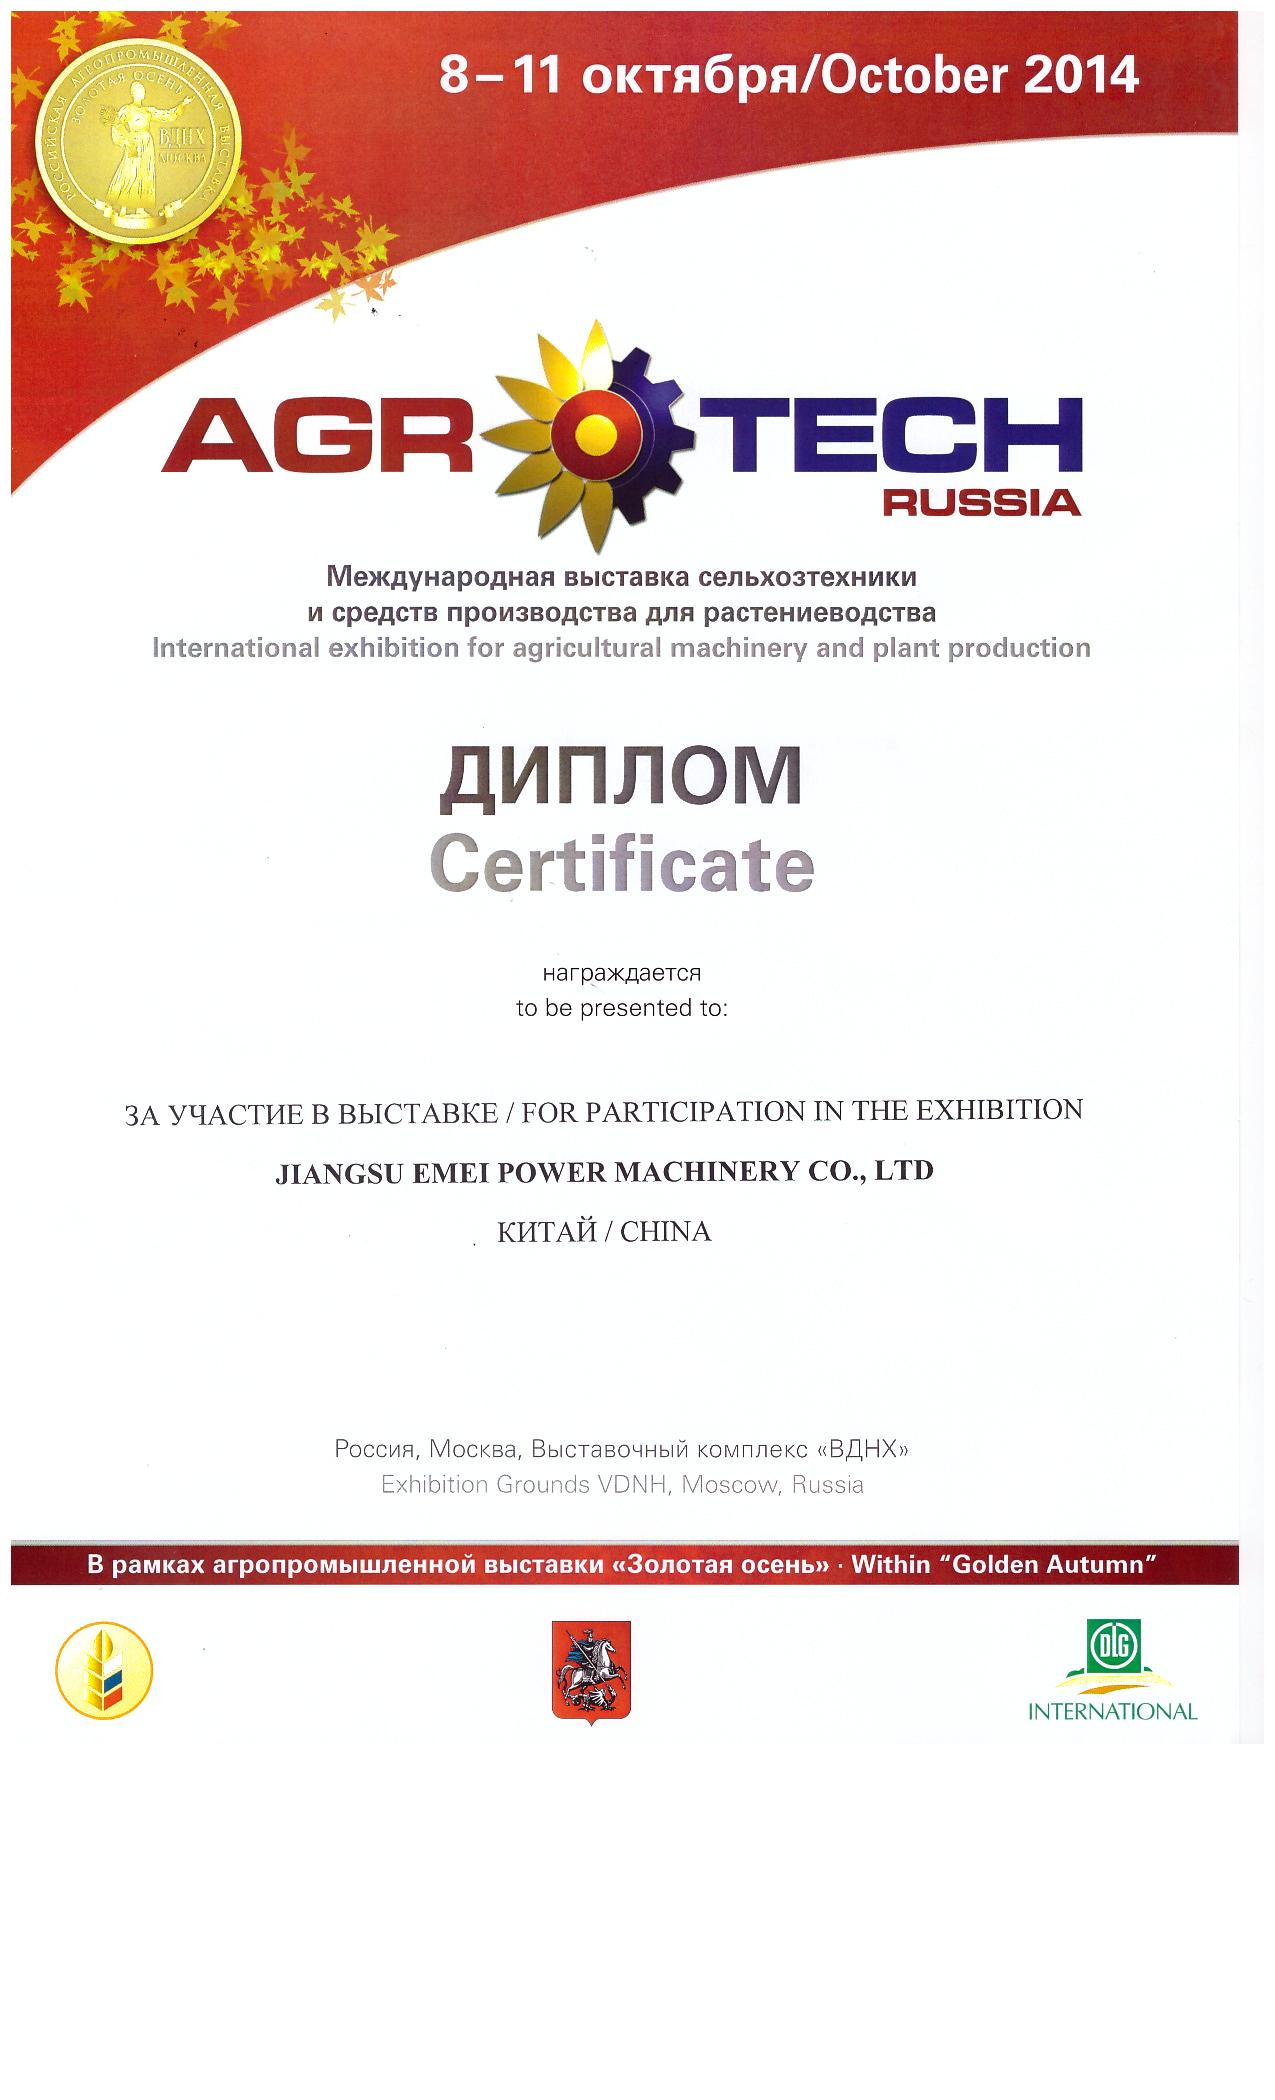 EXHIBITION CERTIFICATE